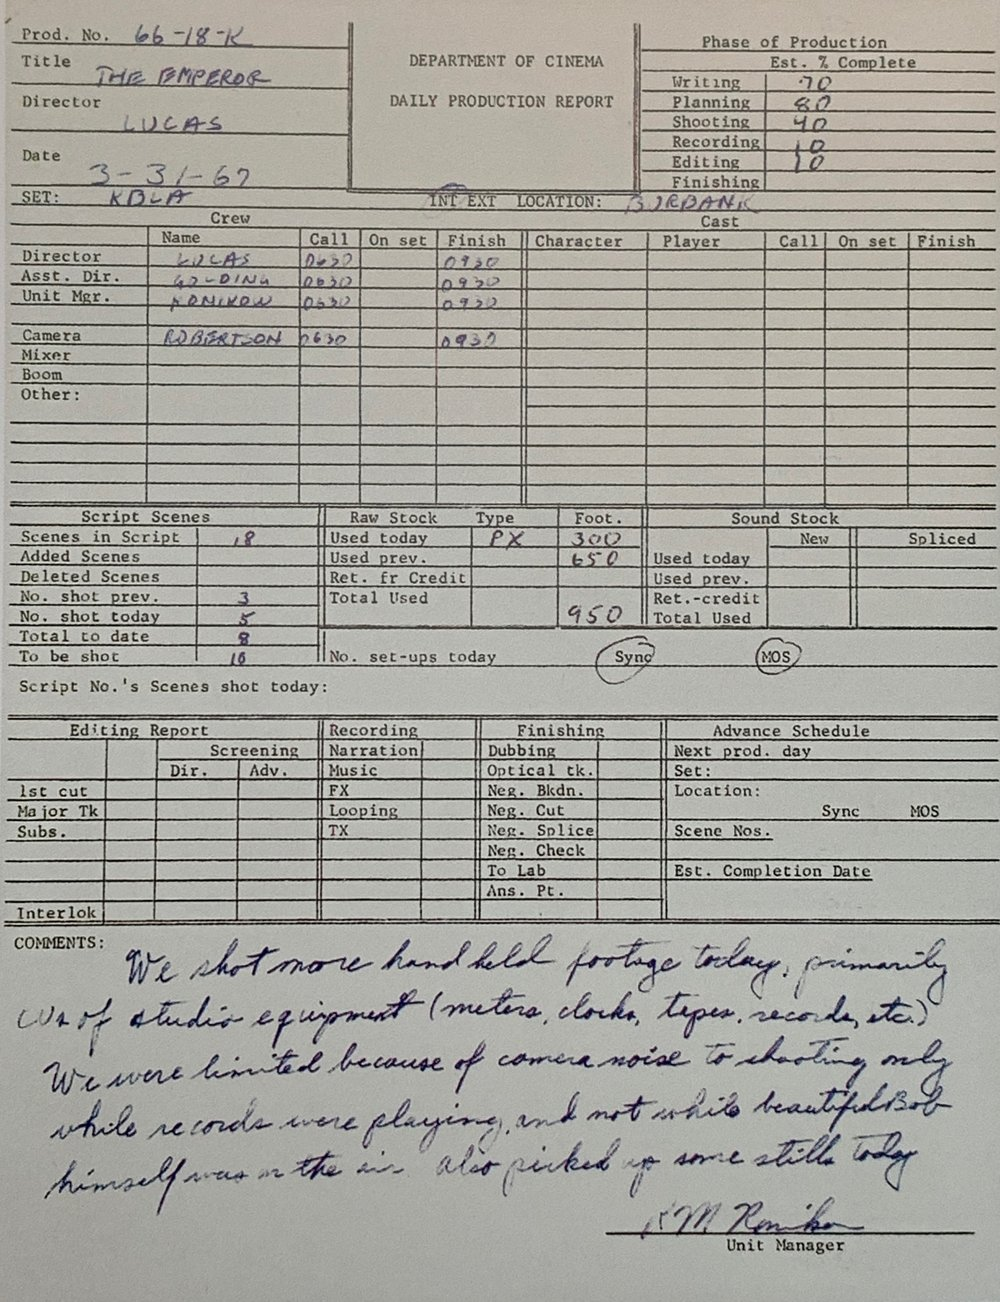 Daily production report from the shoot on March 31, 1967. Comments note that the crew was only allowed to shoot the emperor when records were playing due to noise from the camera!